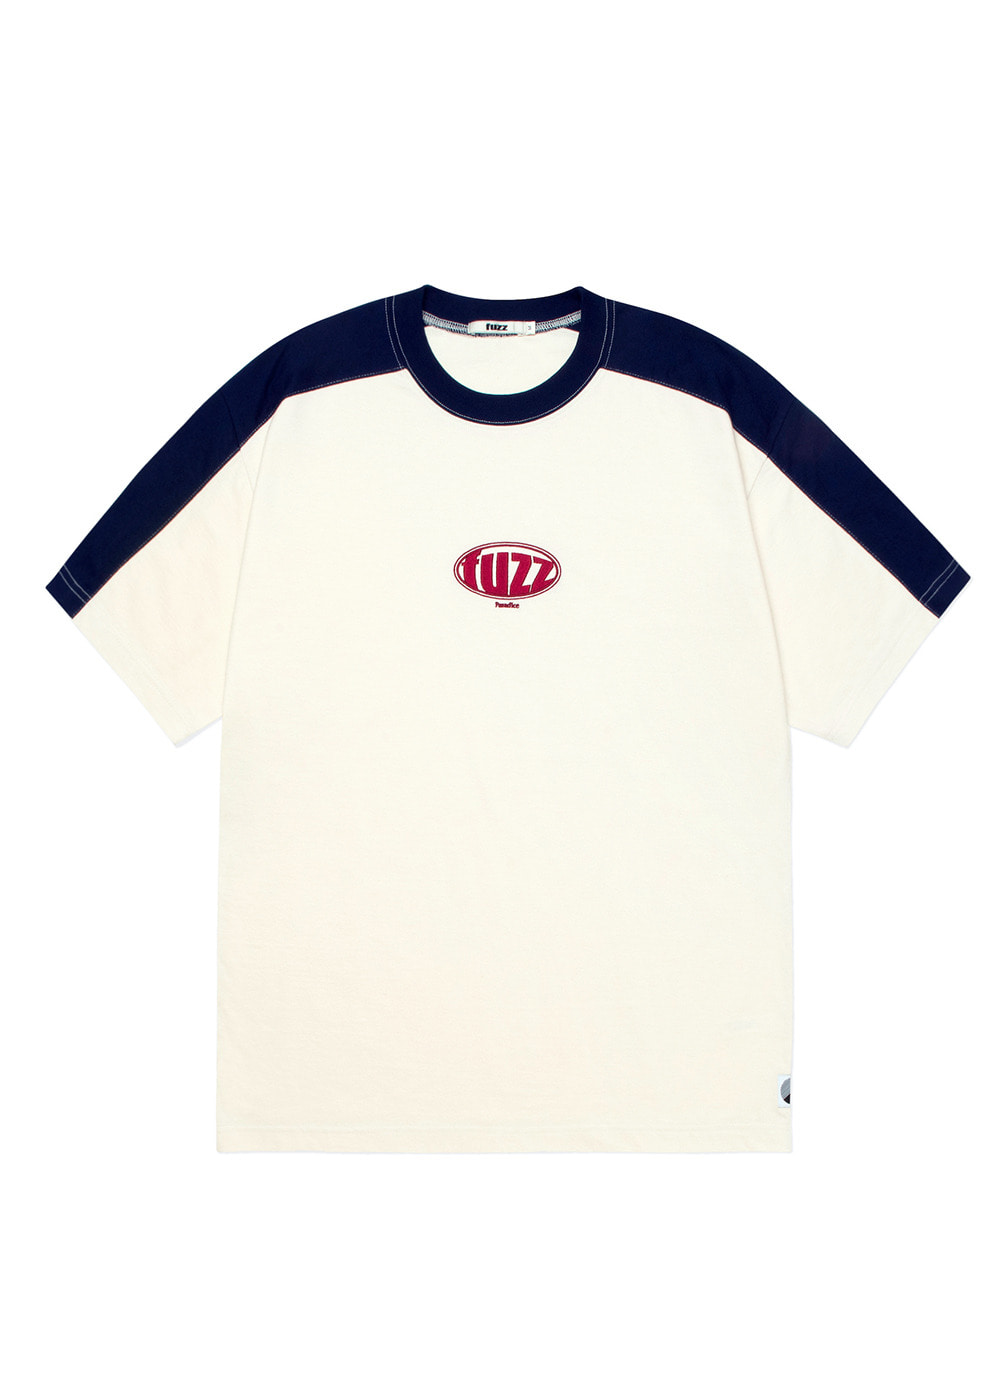 FUZZ TWO TONE CIRCLE LOGO TEE cream